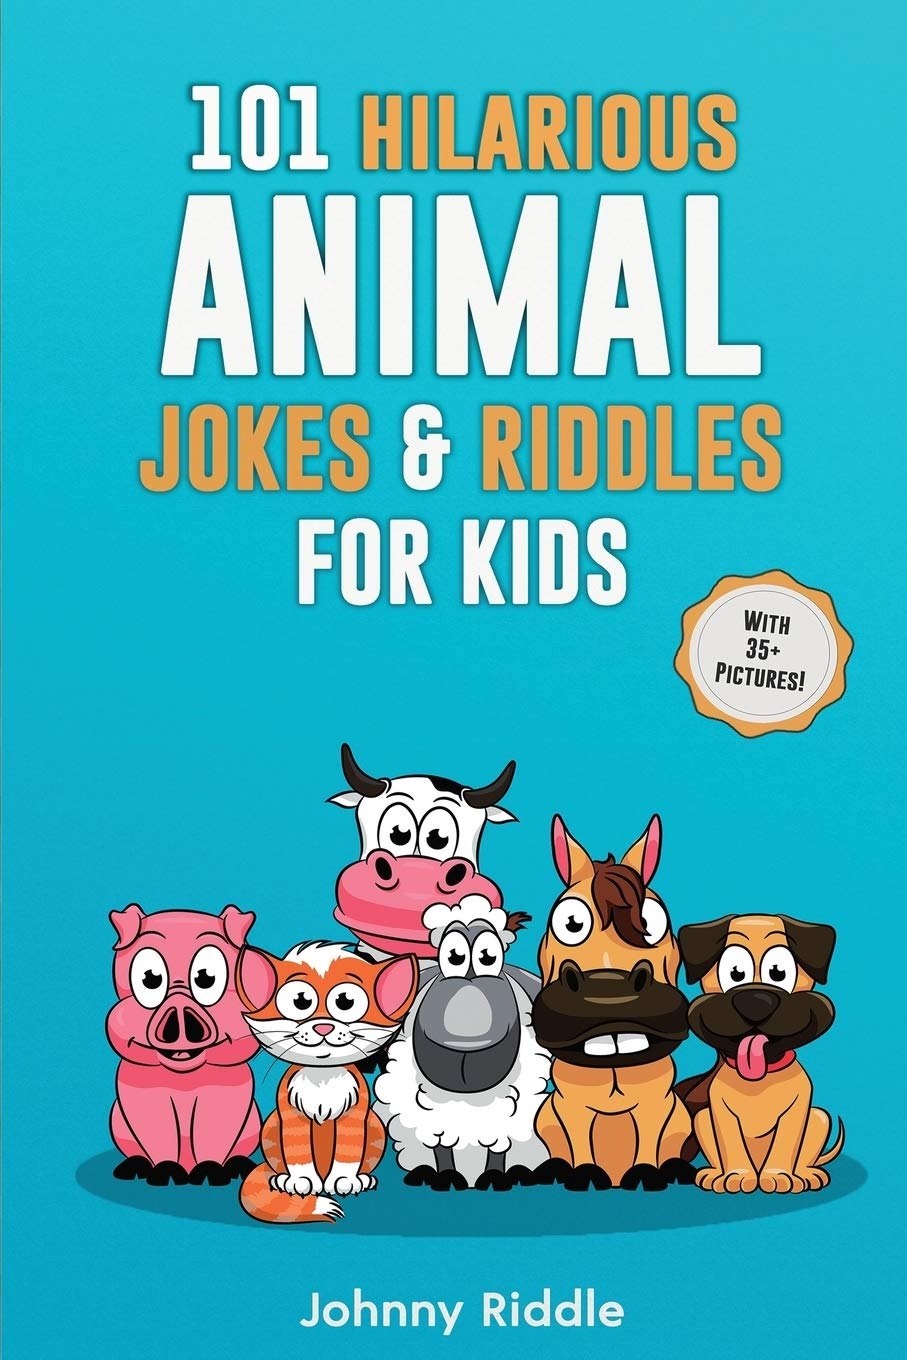 101 Hilarious Animal Jokes Riddles For Kids Laugh Out Loud With These Funny Silly Jokes Even Your Pet Will Laugh With 35 Pictures Amazon Co Uk Riddle Johnny Books